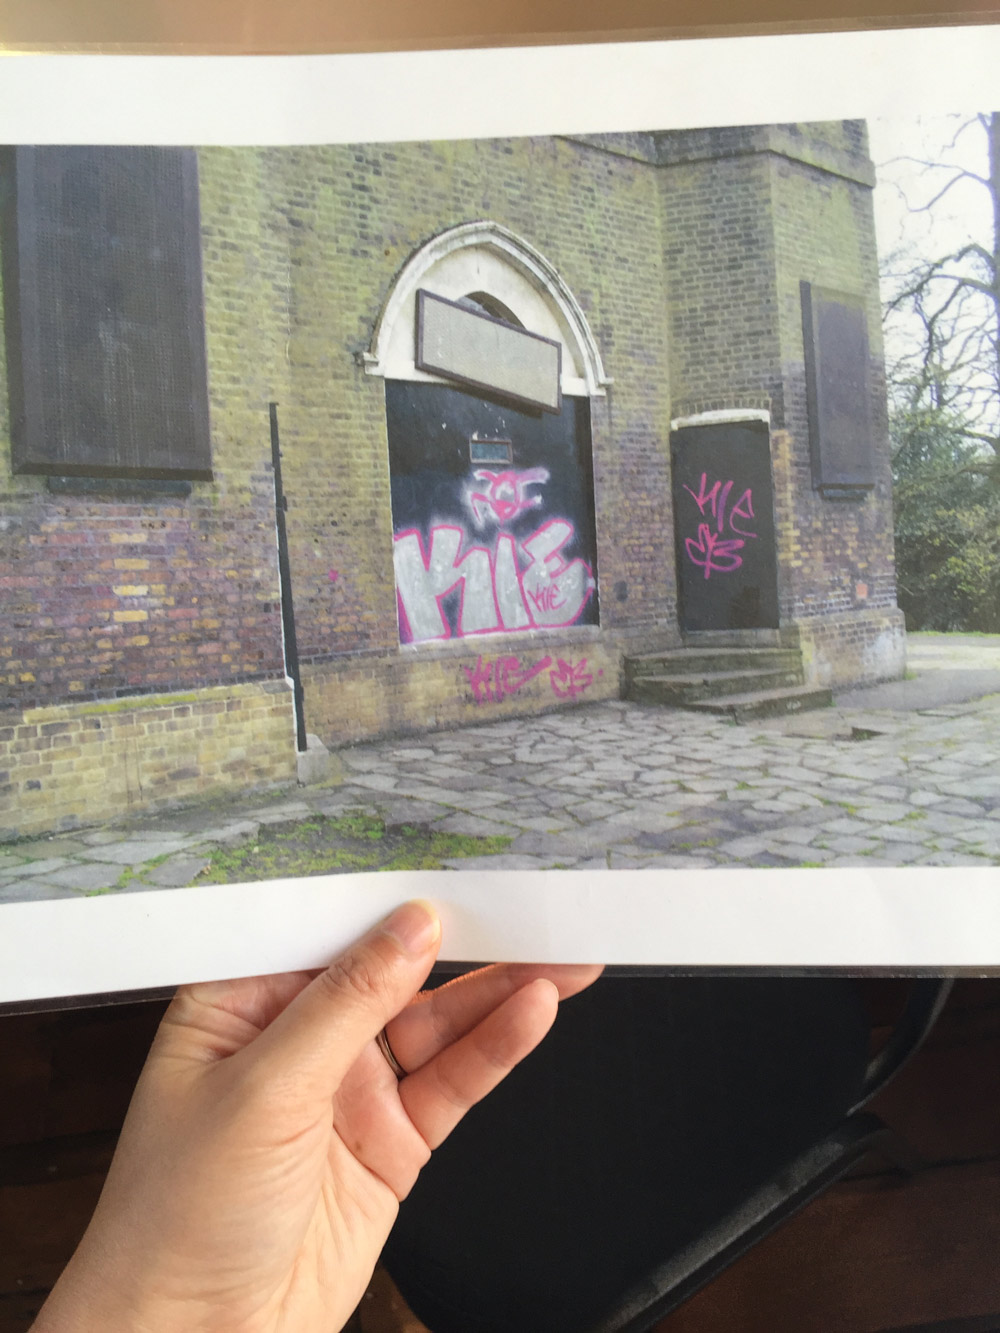 severndroog-blog-post-graffiti-hana-2016